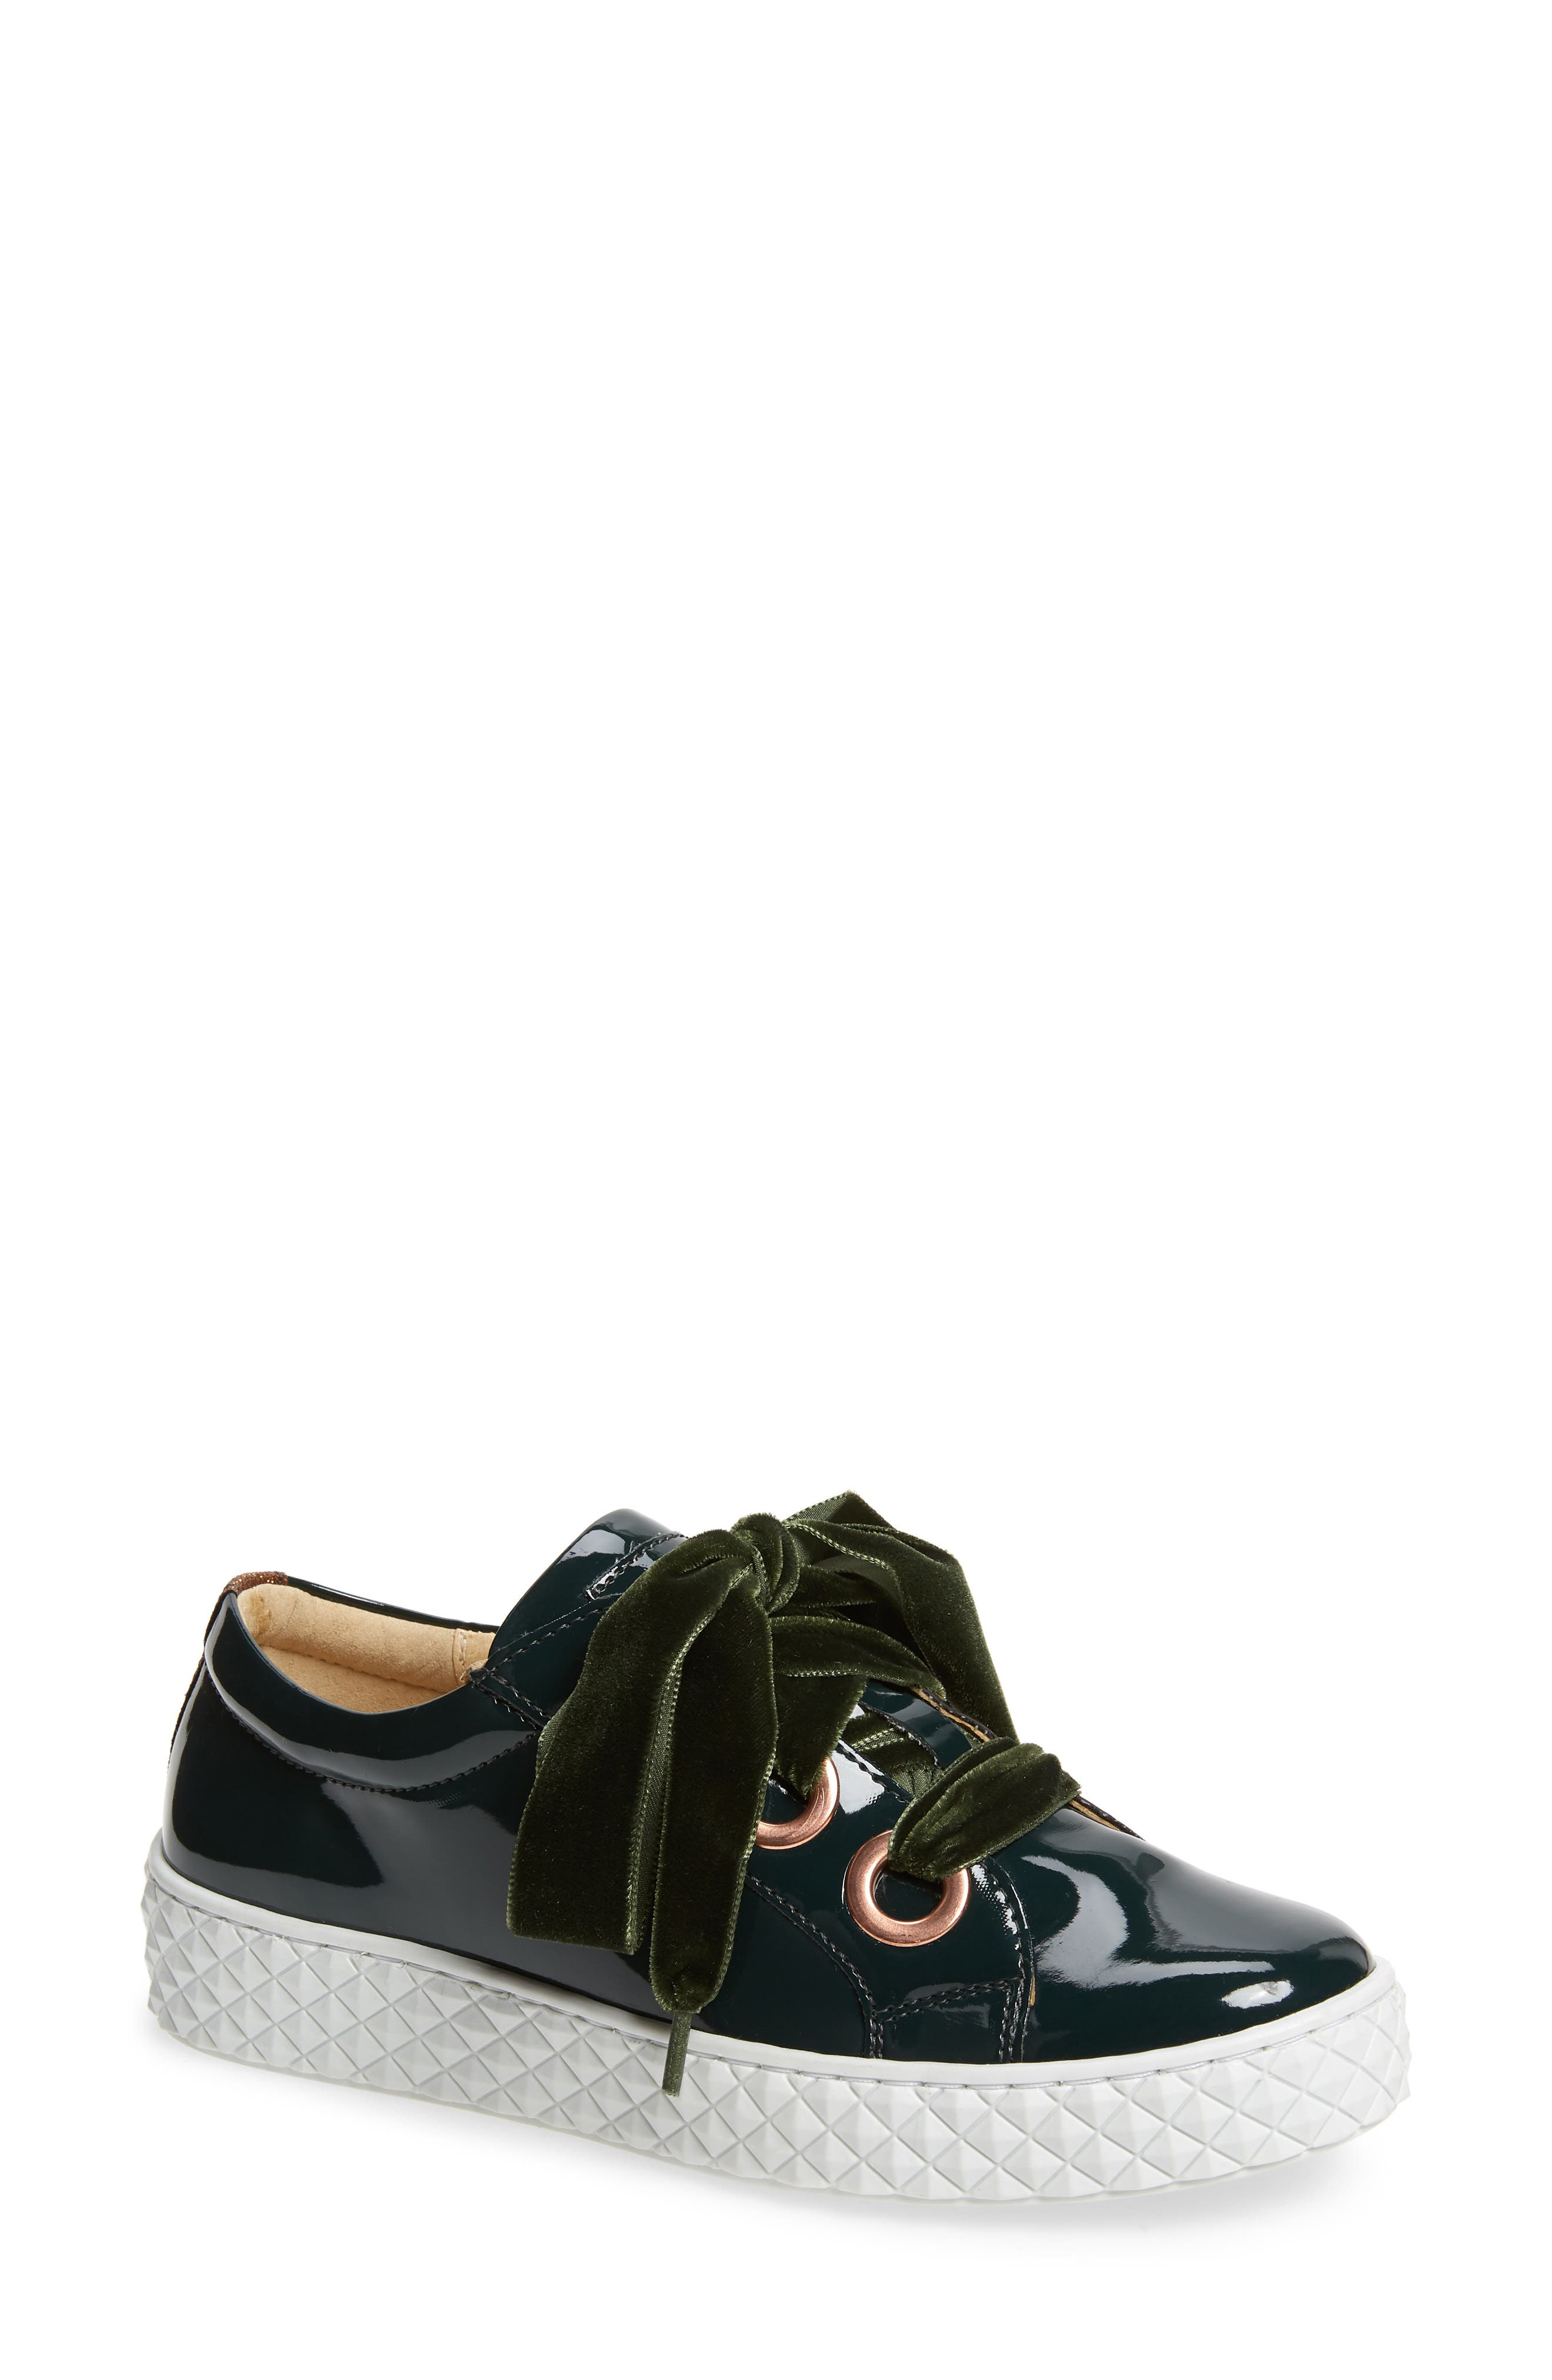 Acton III Sneaker,                             Main thumbnail 1, color,                             BOTTLE GREEN LEATHER